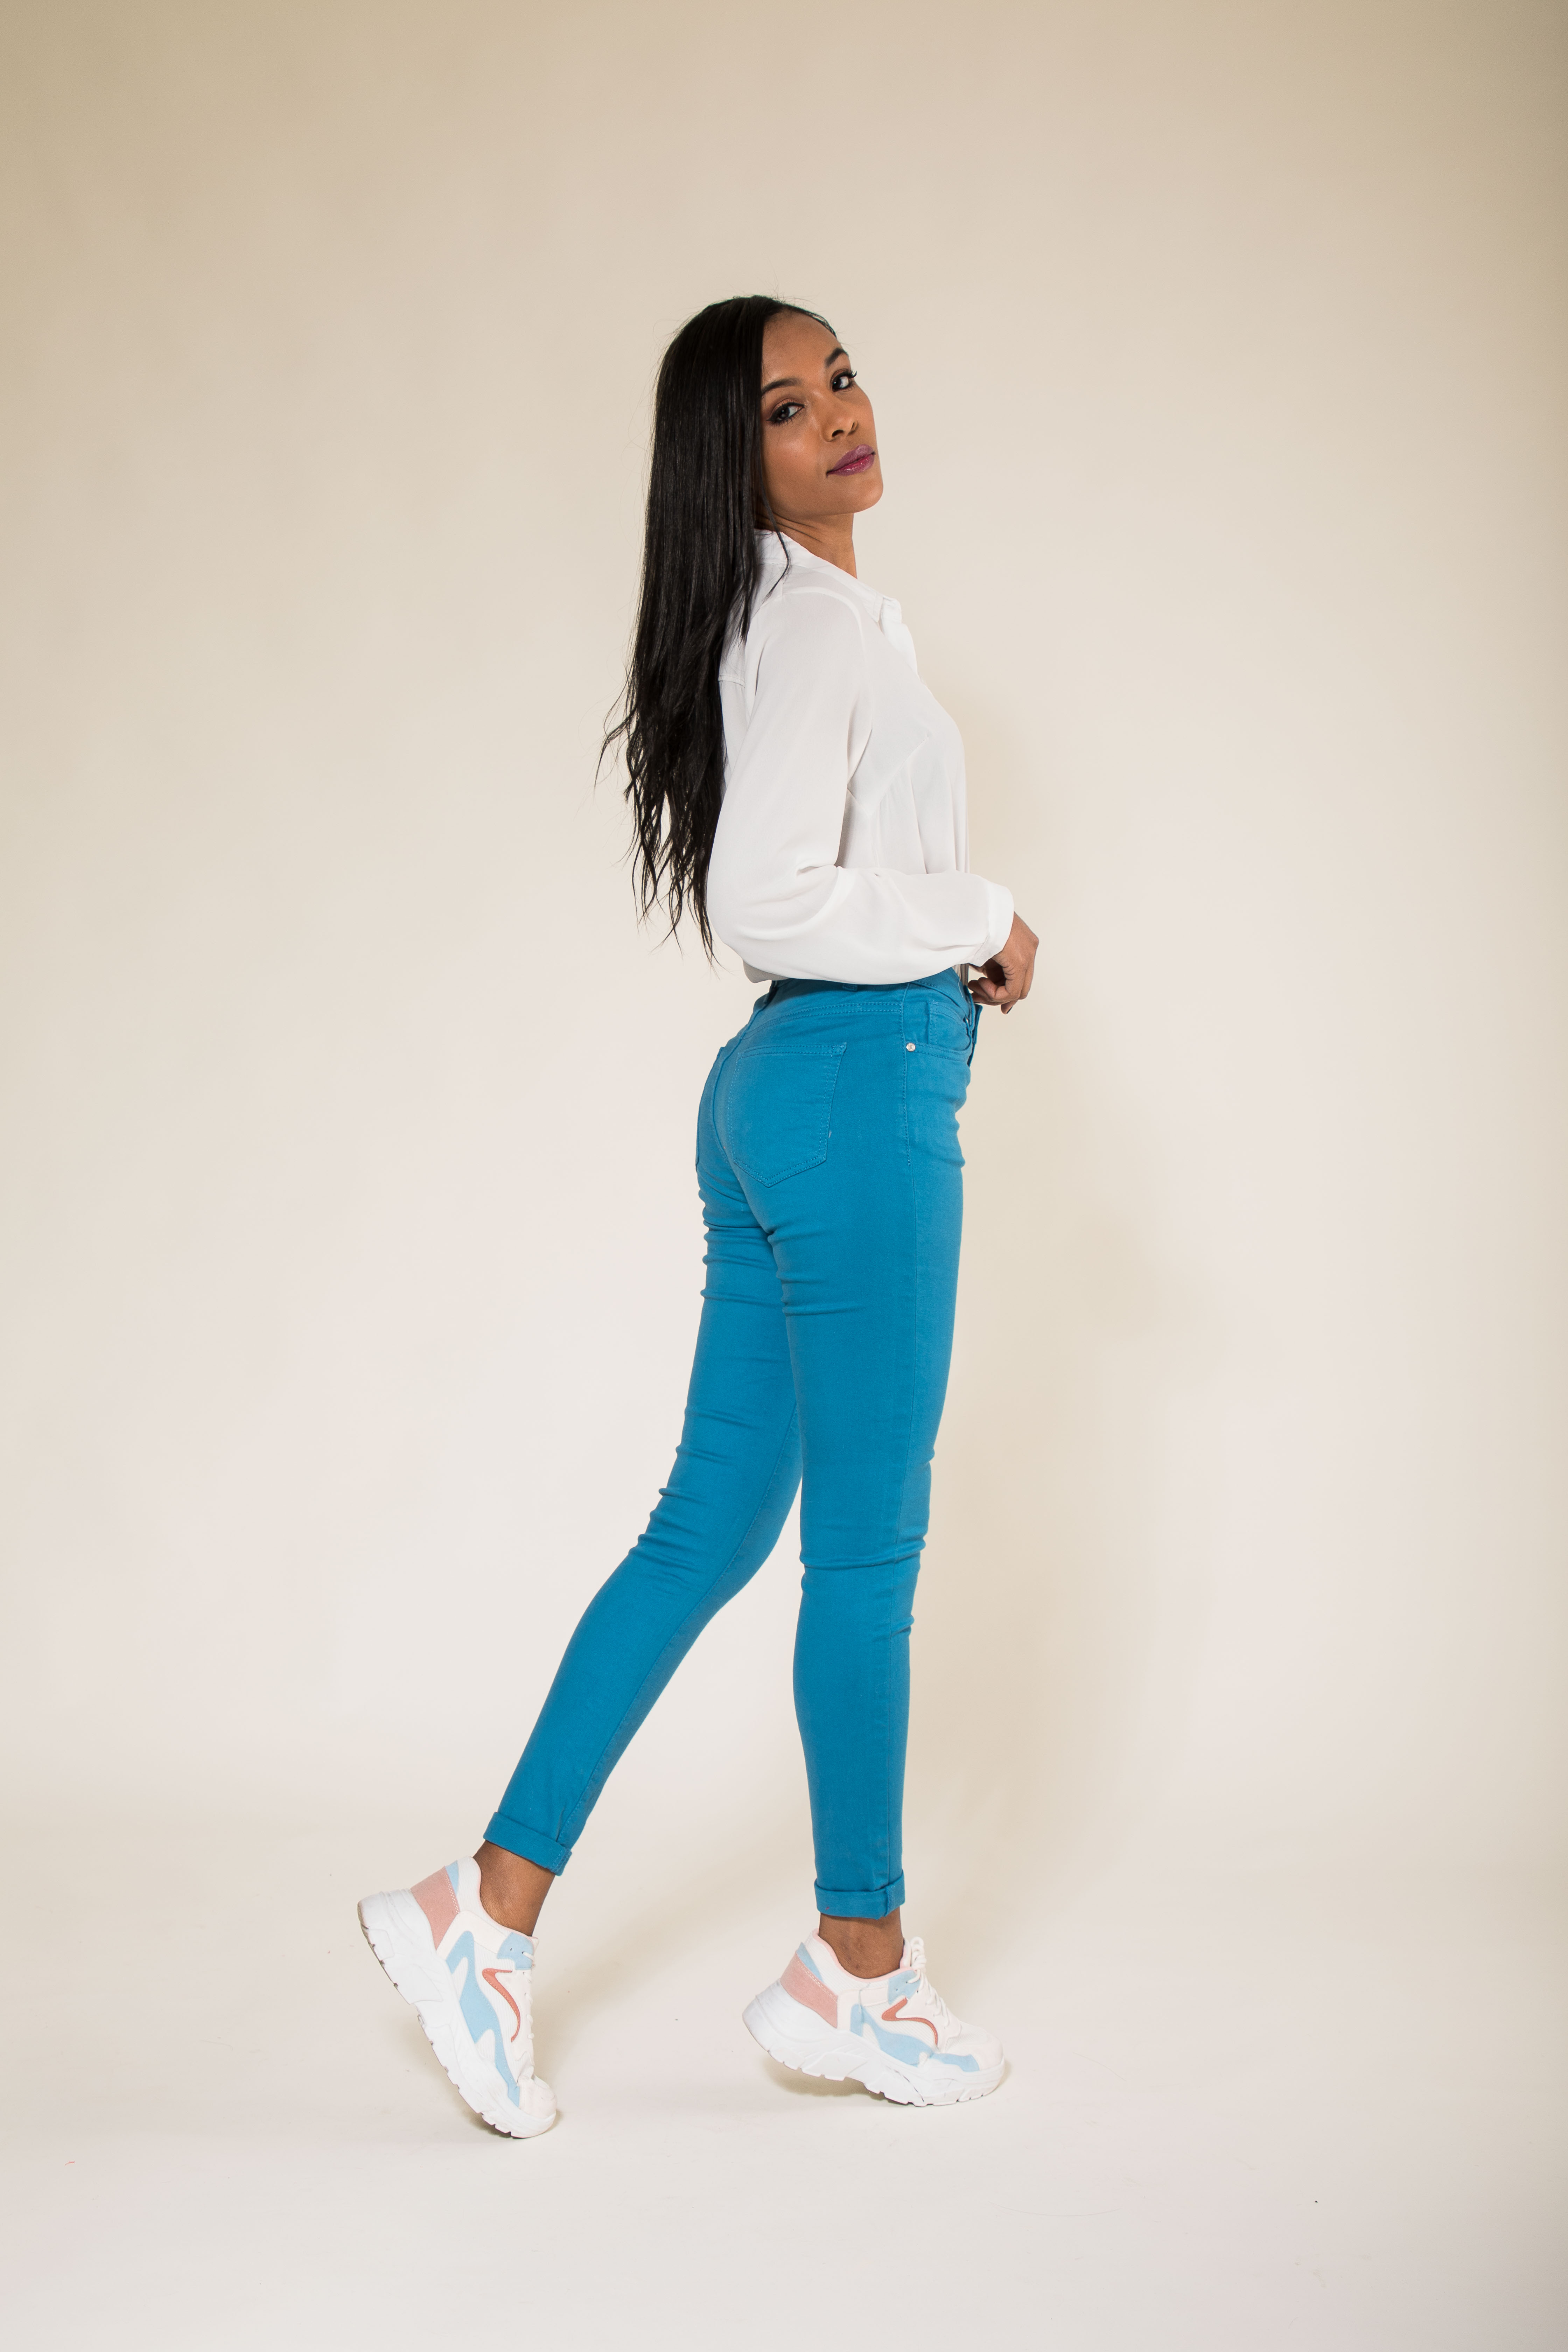 Women-High-Waisted-Jeans-Ladies-Coloured-Stretchy-jeggings-Pants-Size-6-14 thumbnail 14